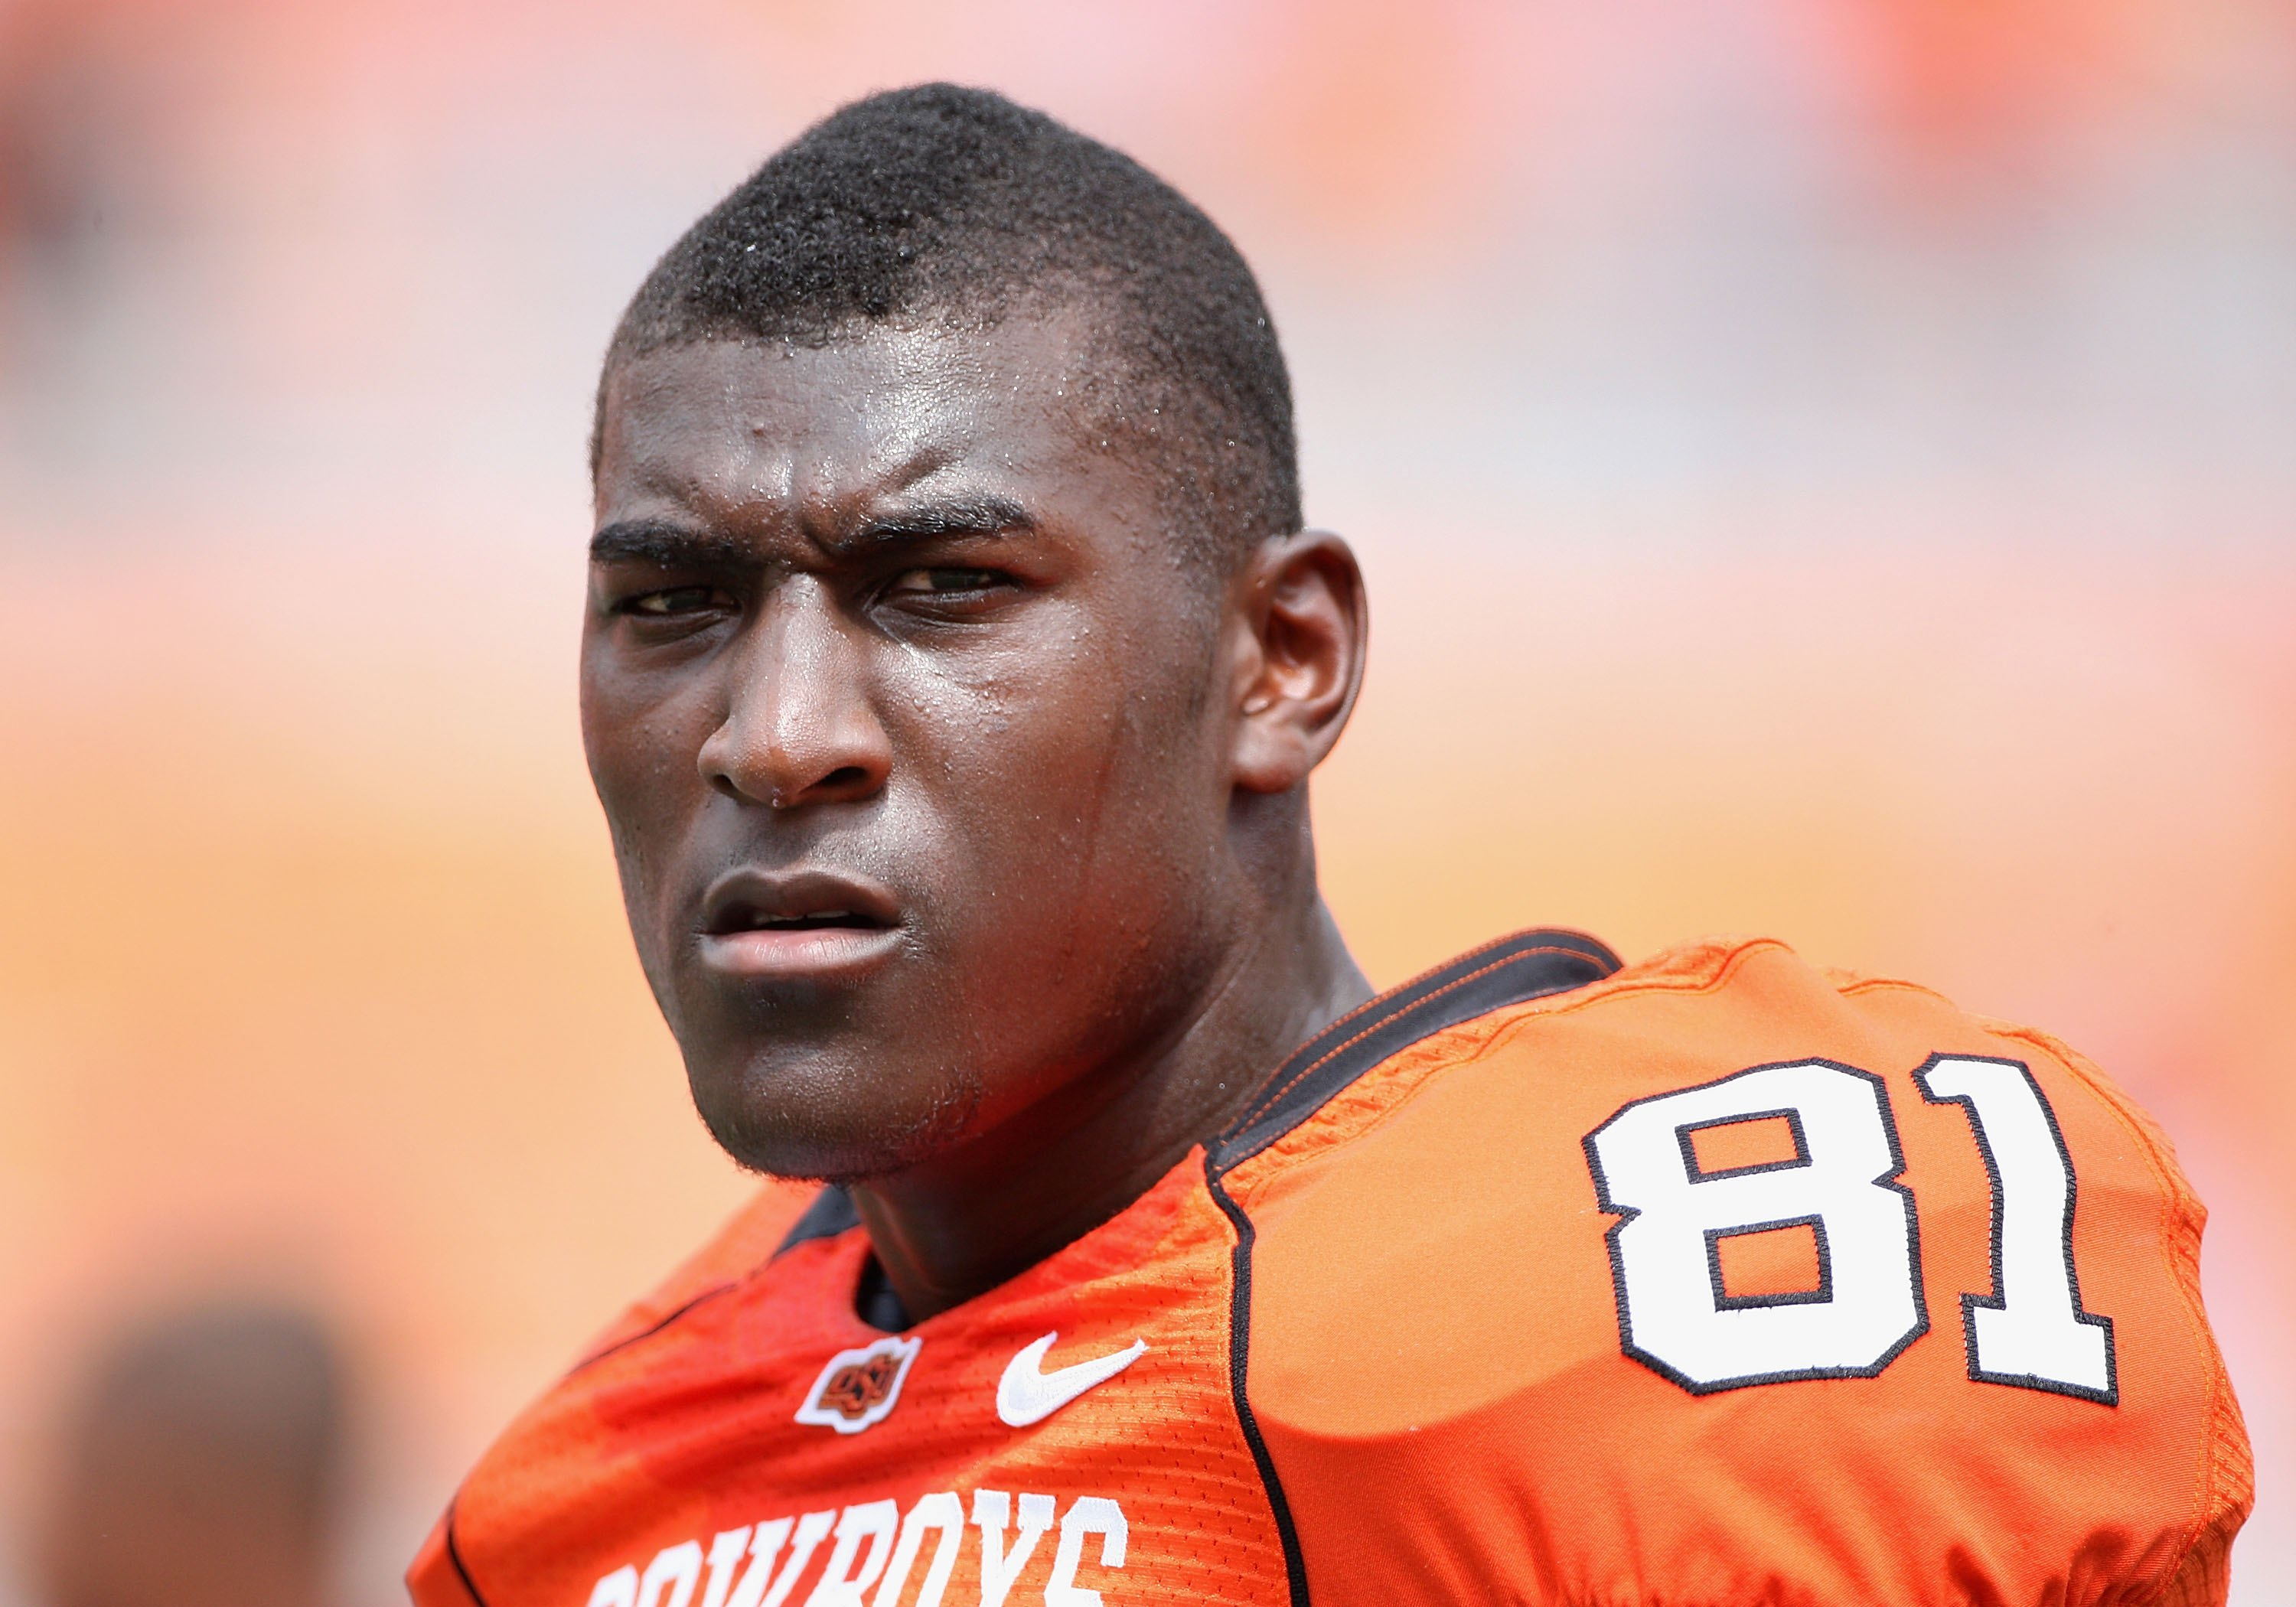 STILLWATER, OK - SEPTEMBER 05:  Wide receiver Justin Blackmon #81 of the Oklahoma State Cowboys warms up before the college football game against the Georgia Bulldogs at Boone Pickens Stadium on September 5, 2009 in Stillwater, Oklahoma.  The Cowboys defe